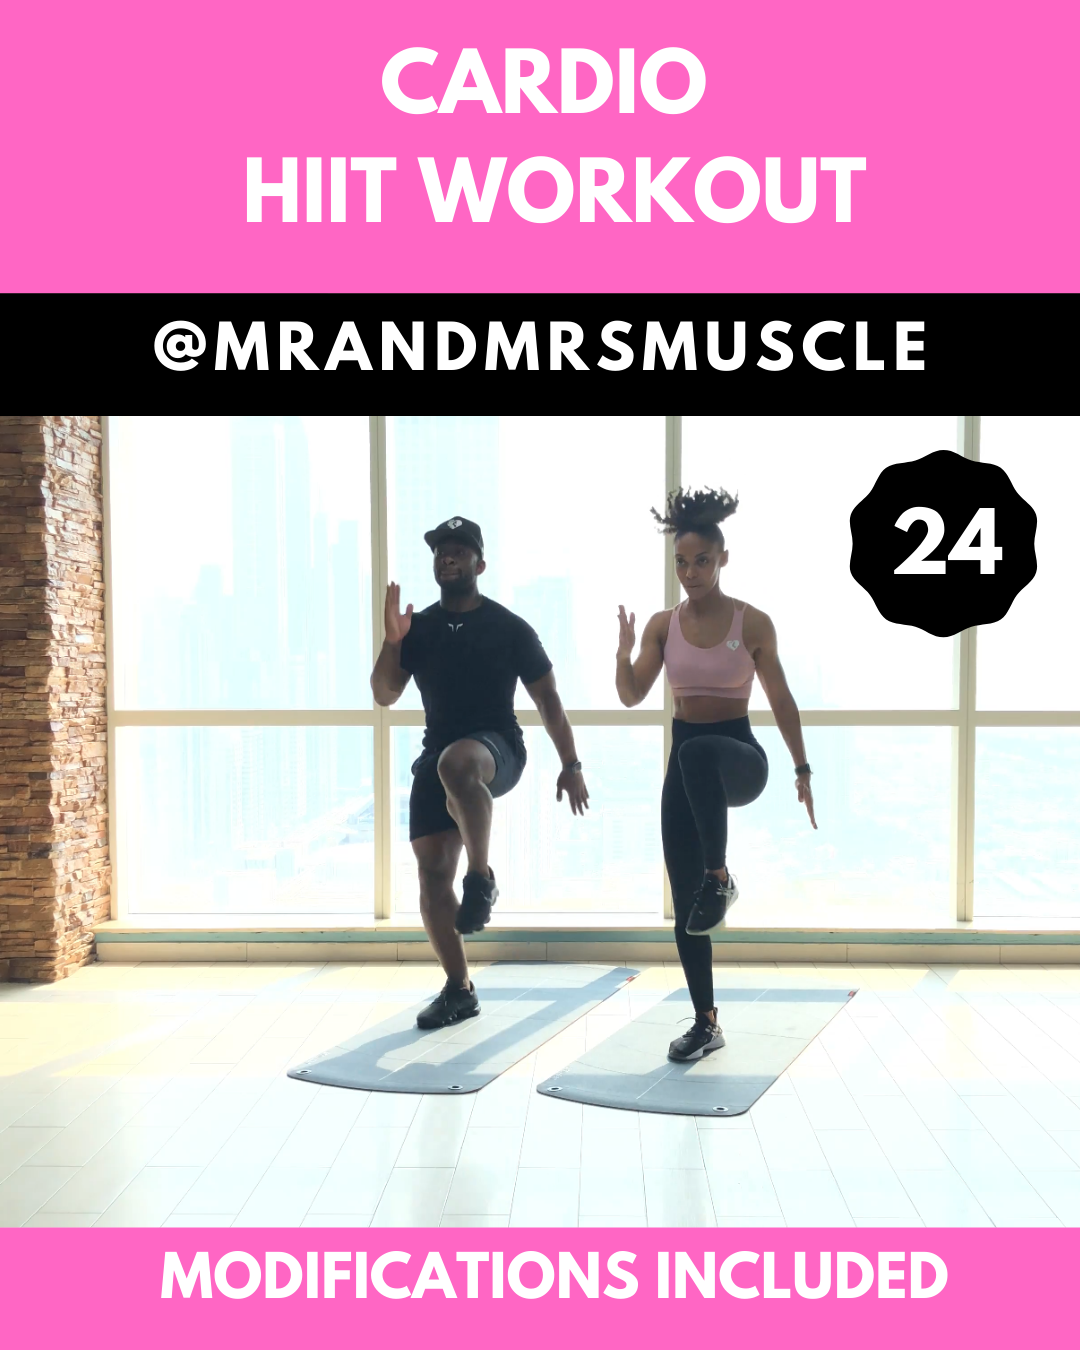 Cardio Workout - HIIT at Home or Gym #cardioyoga